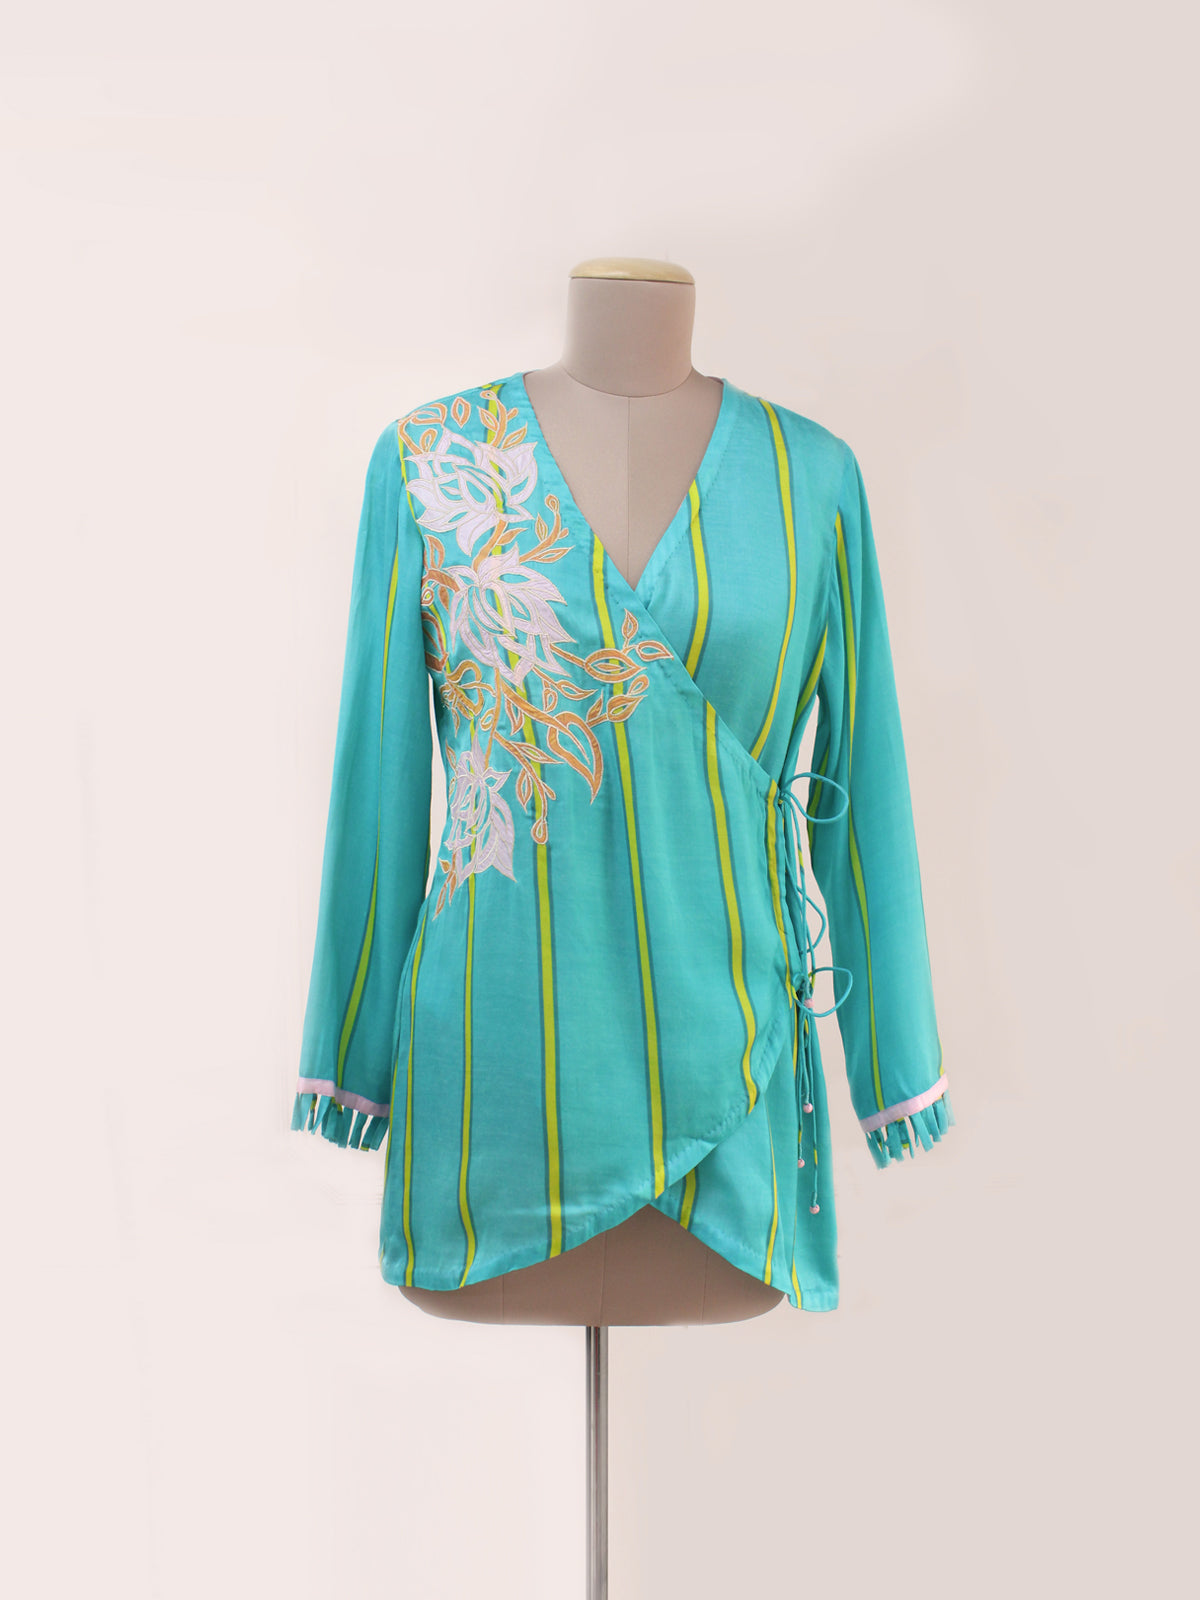 TURQUOISE FESTIVE STRIPES APPLIQUE WRAP TOP